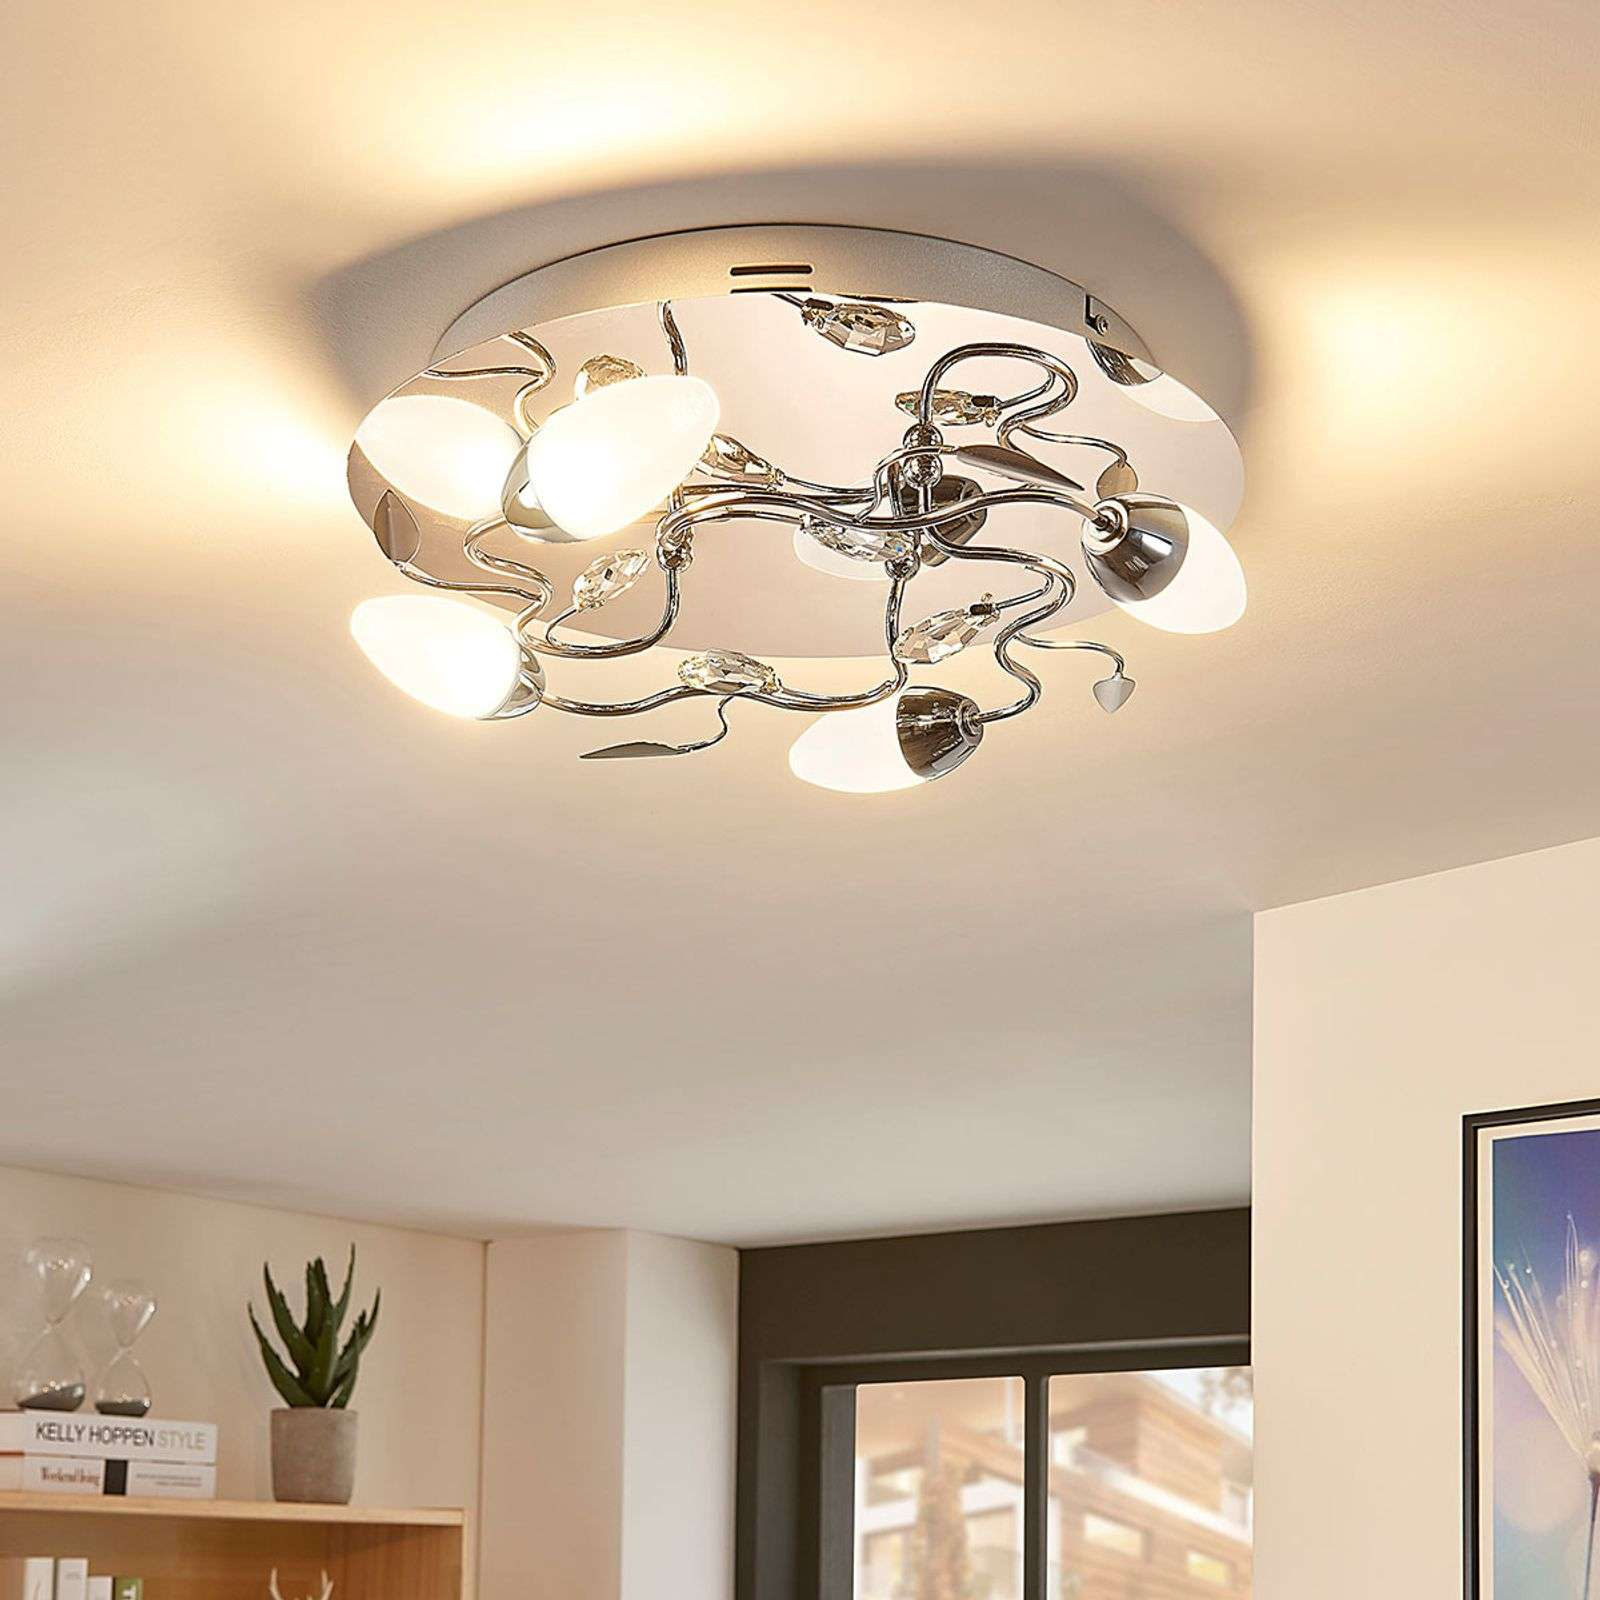 Plafonnier LED dimmable Mischa rond, 4 lampes